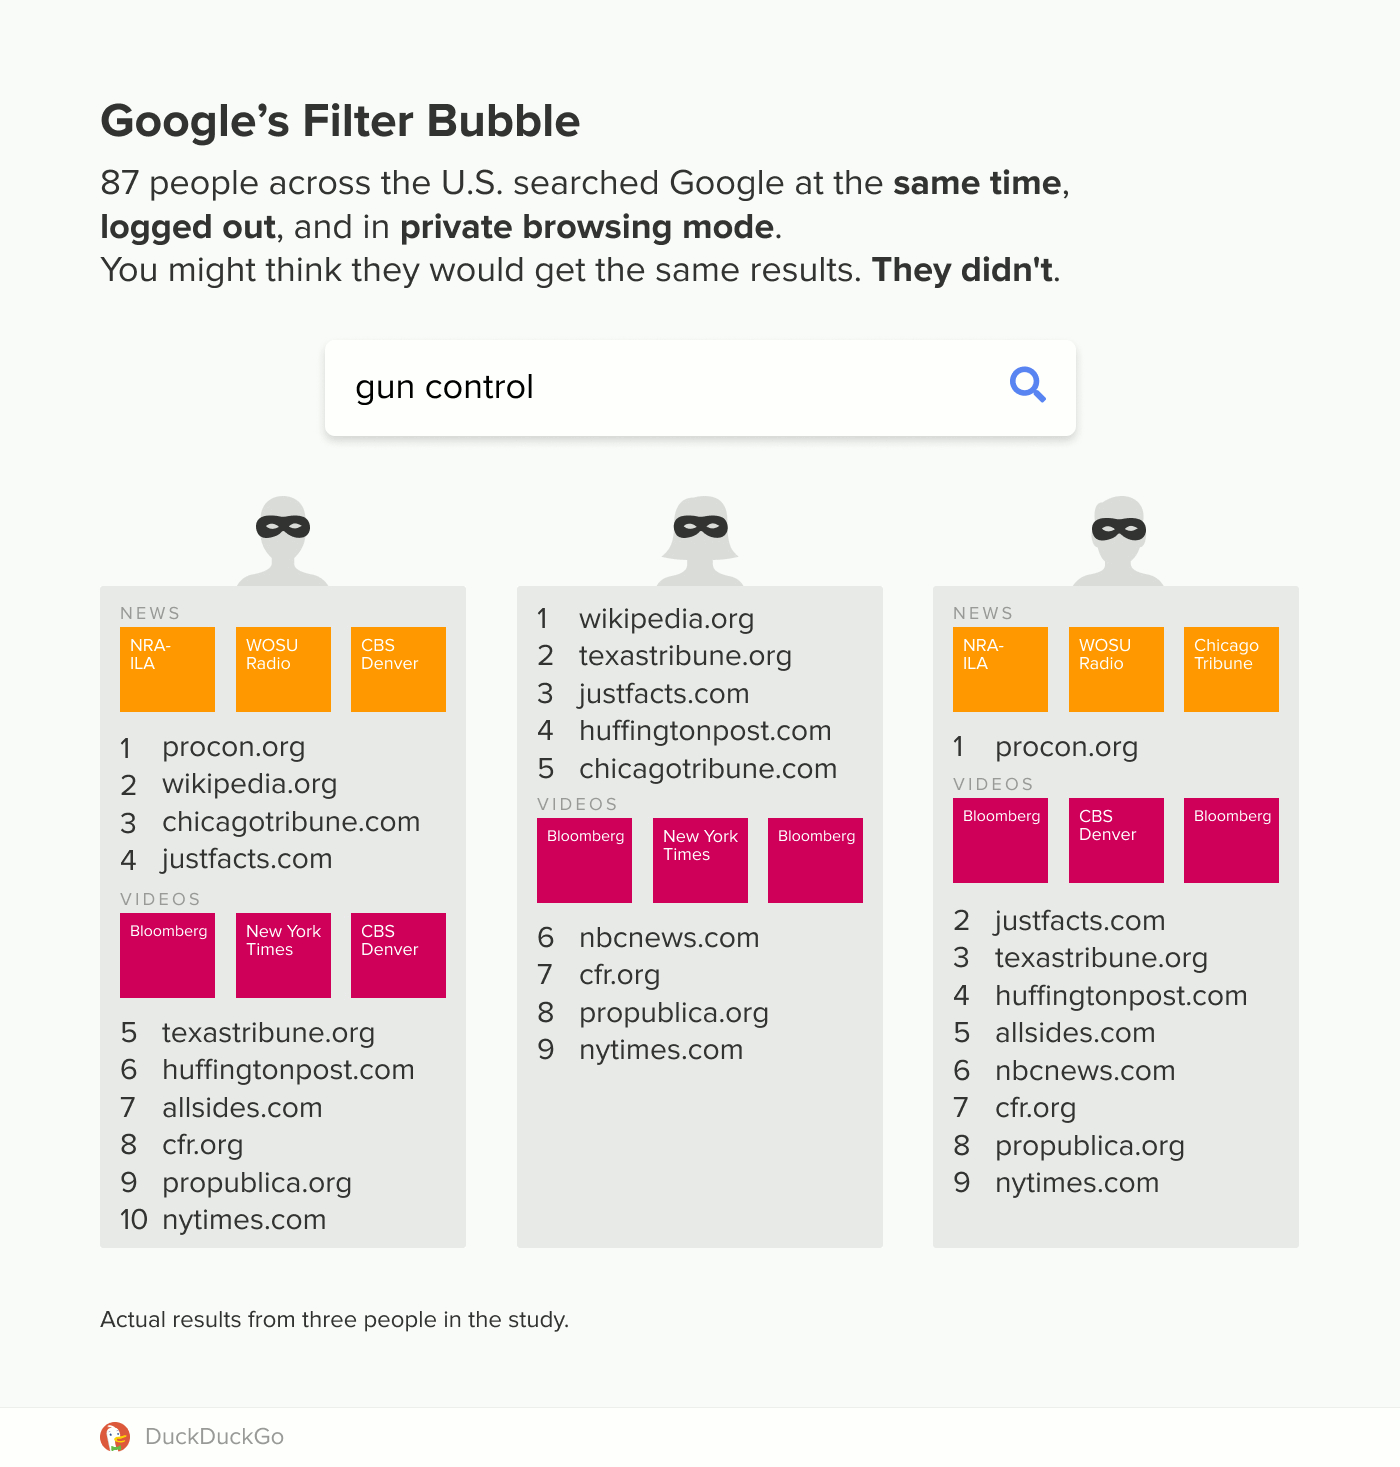 filter bubble overview 3 - Even in Incognito Mode Google is influencing what you click - DuckDuckGo